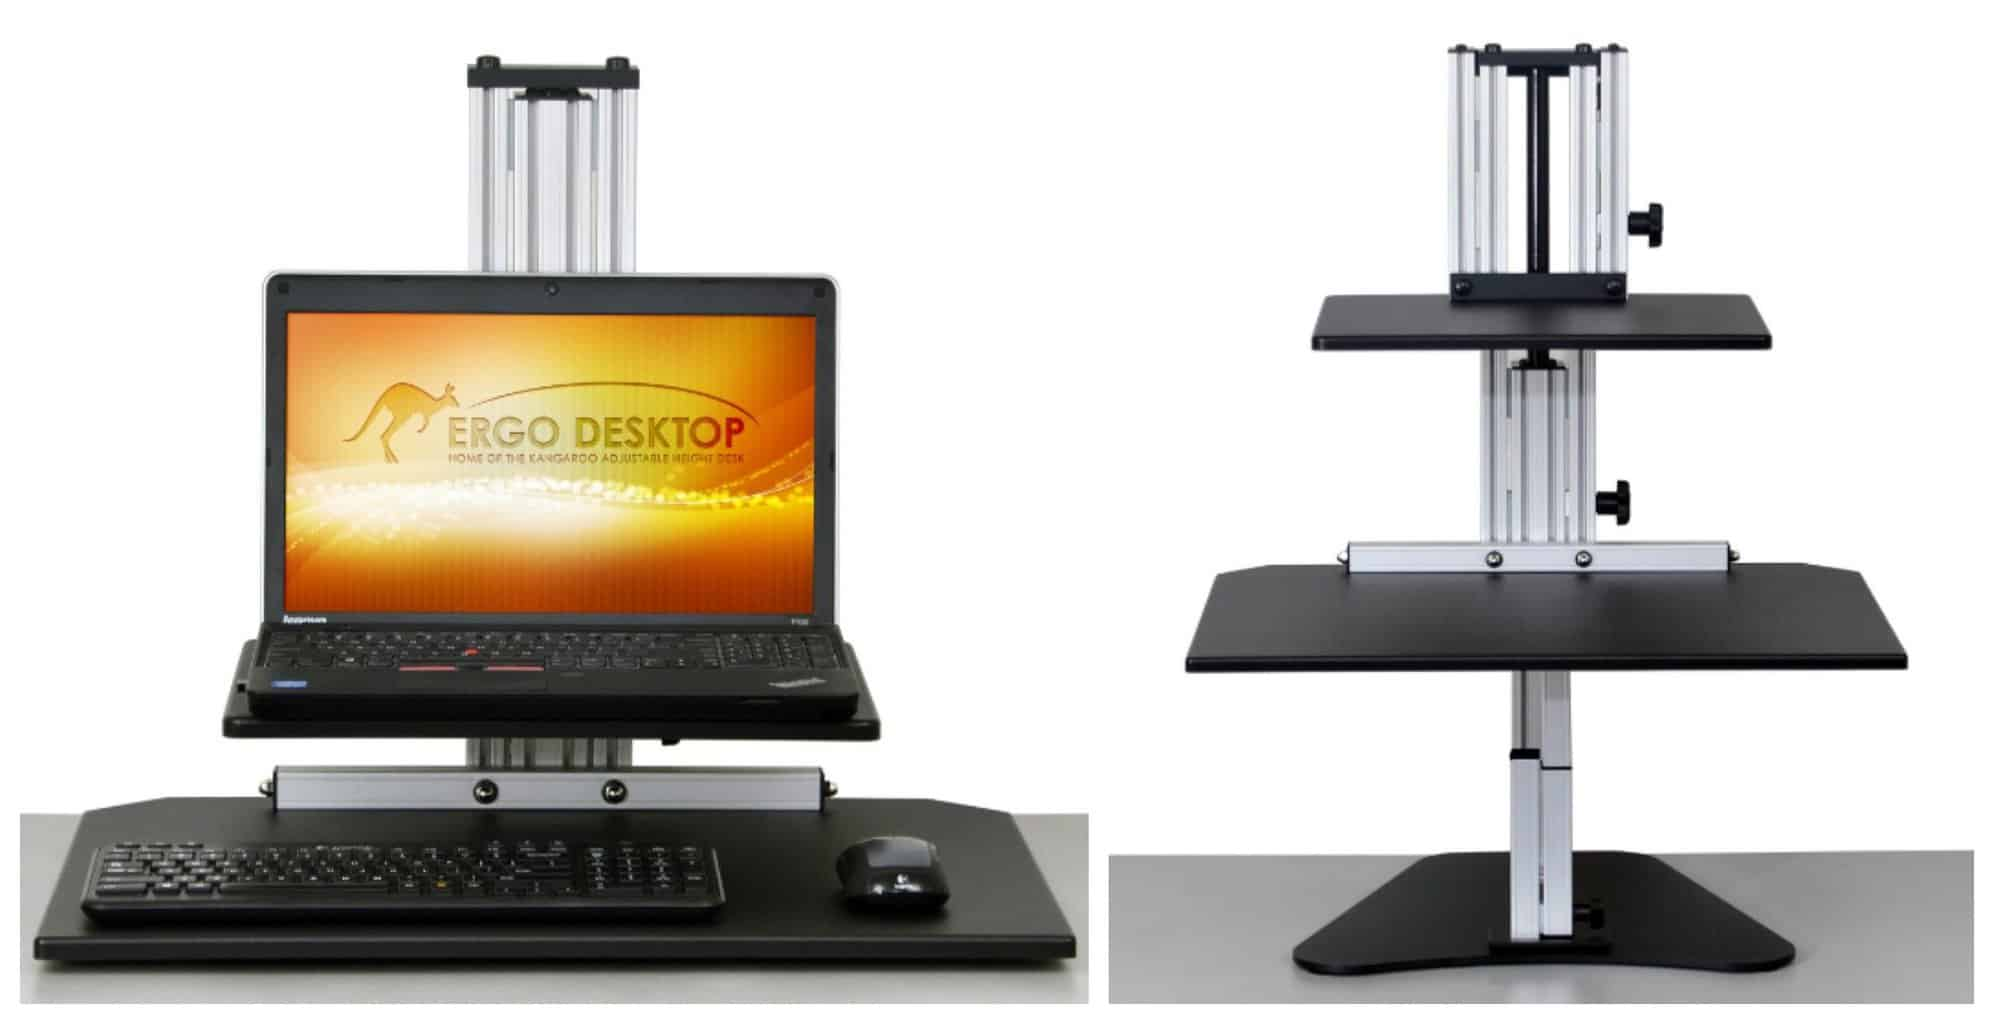 Kangaroo Junior Ergo Desktop adjustable height computer